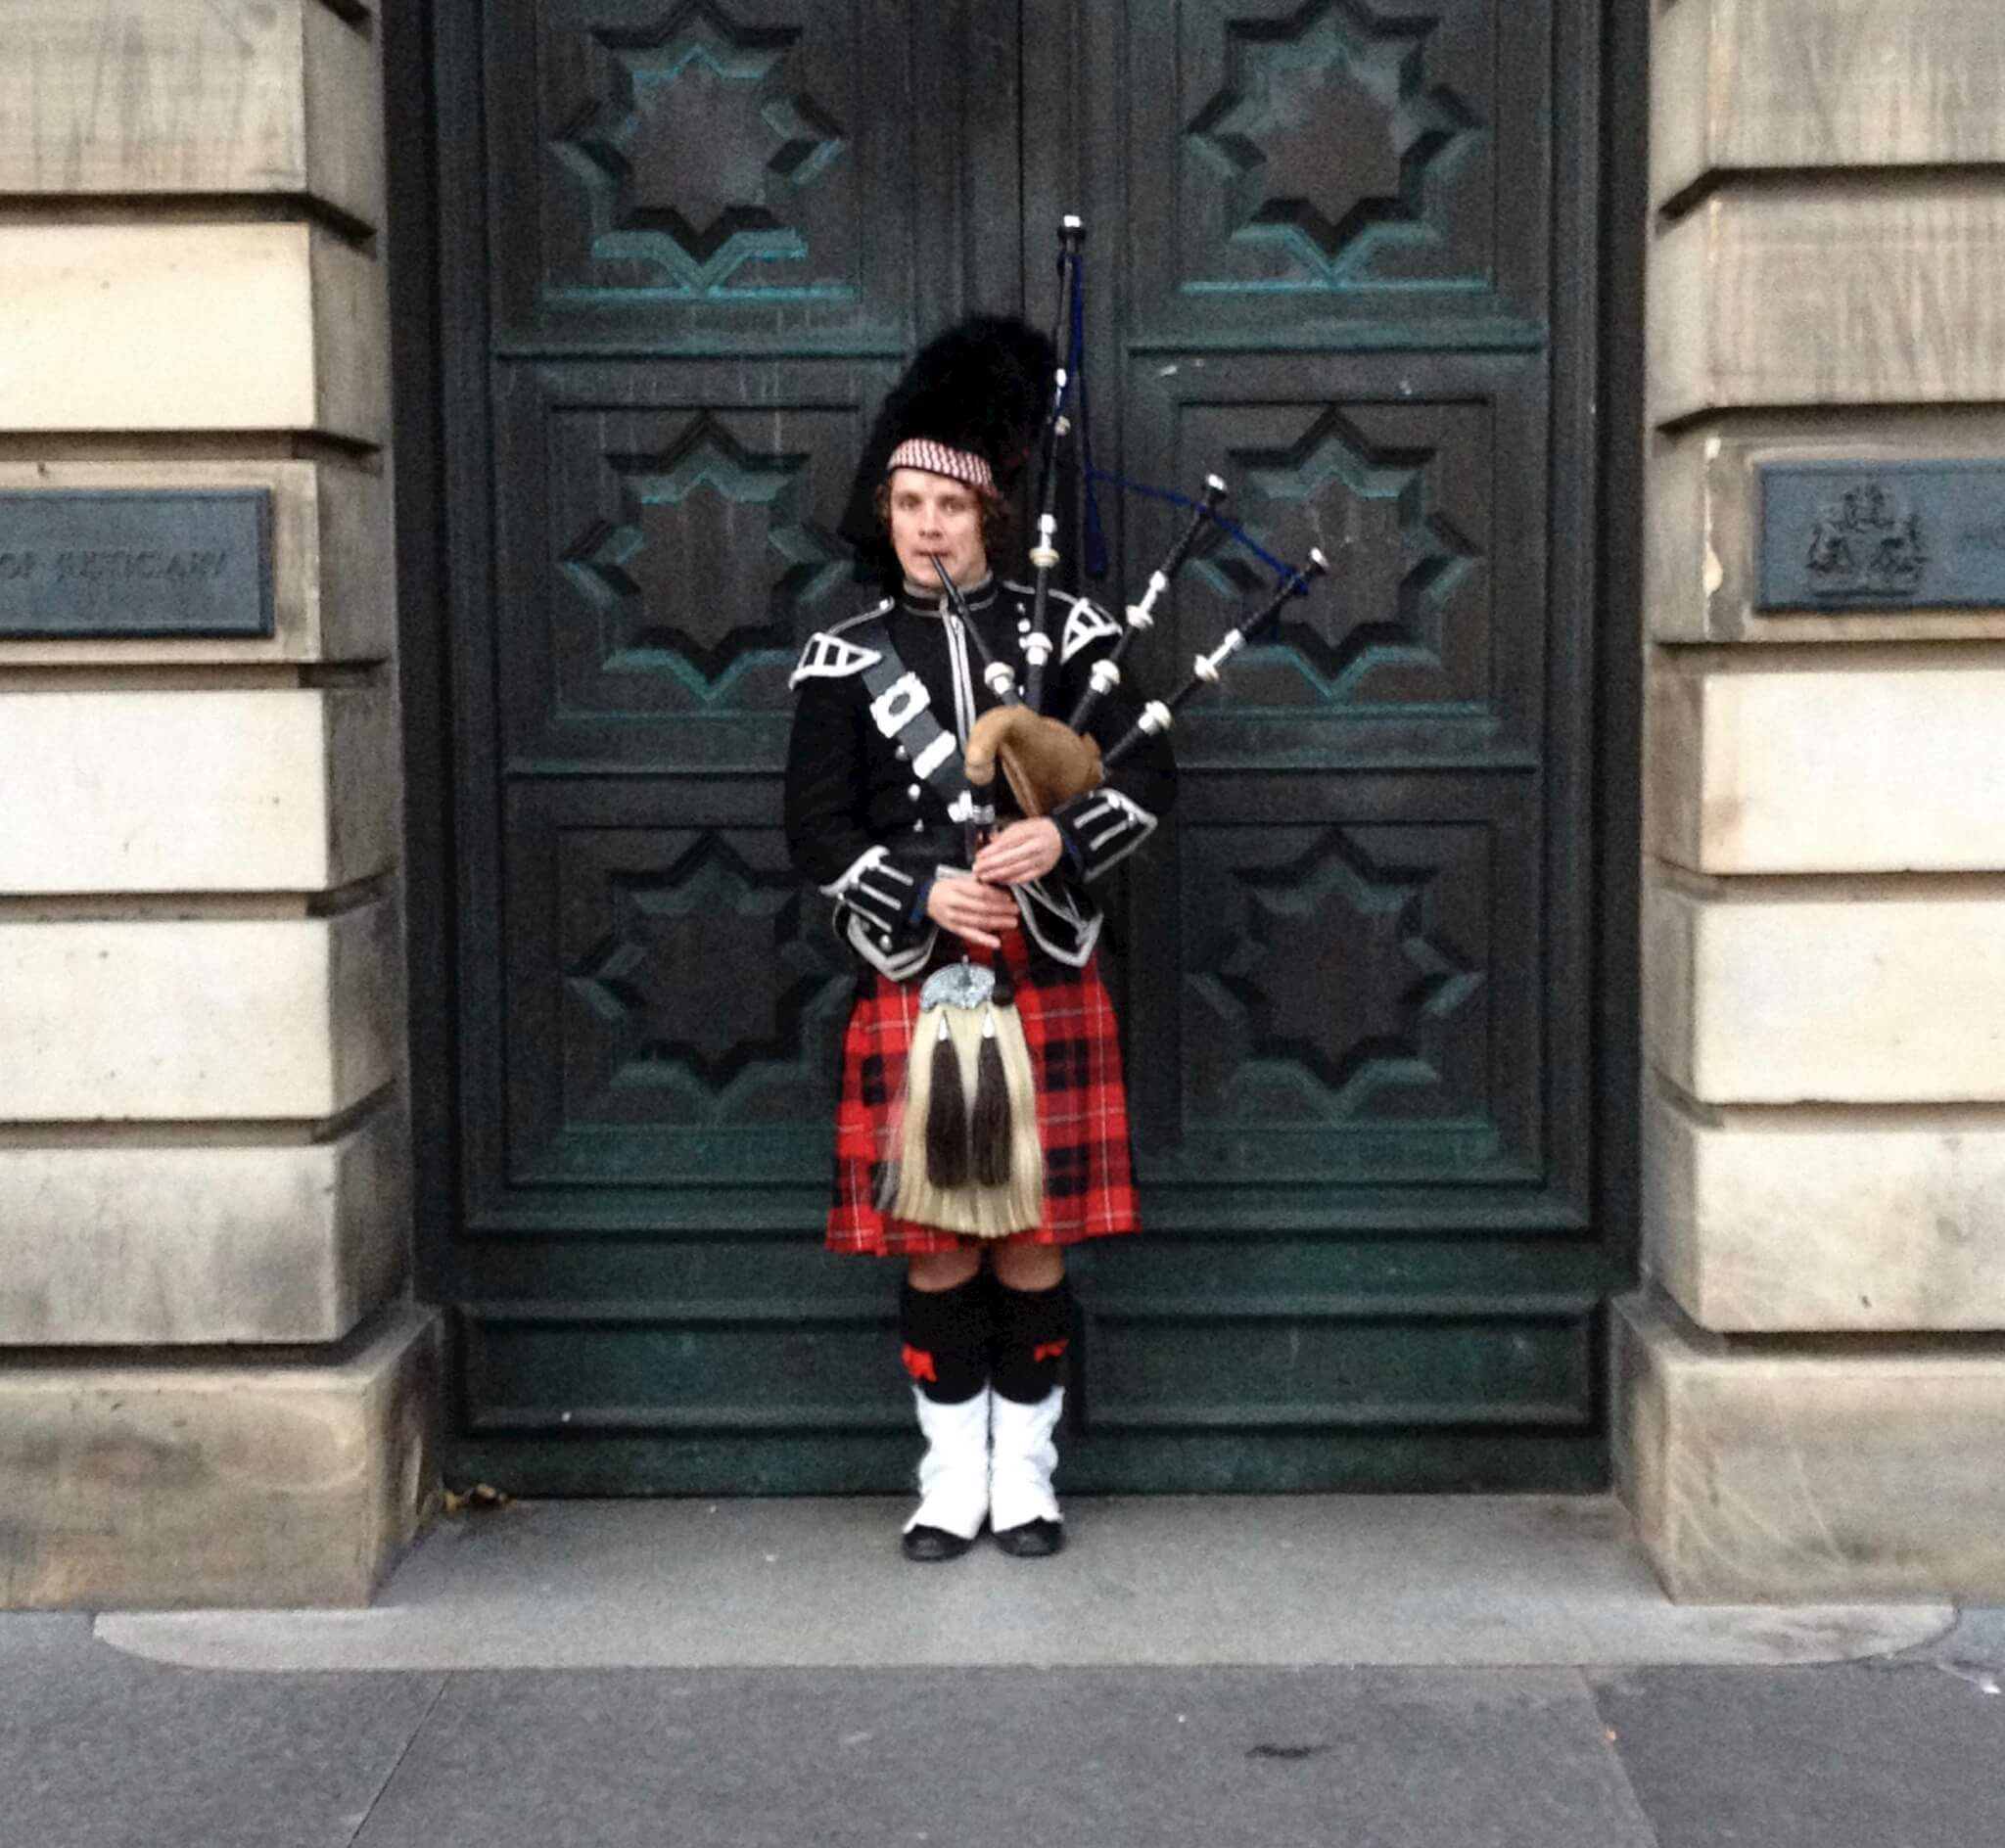 He probably didn't buy those bagpipes on Craigslist